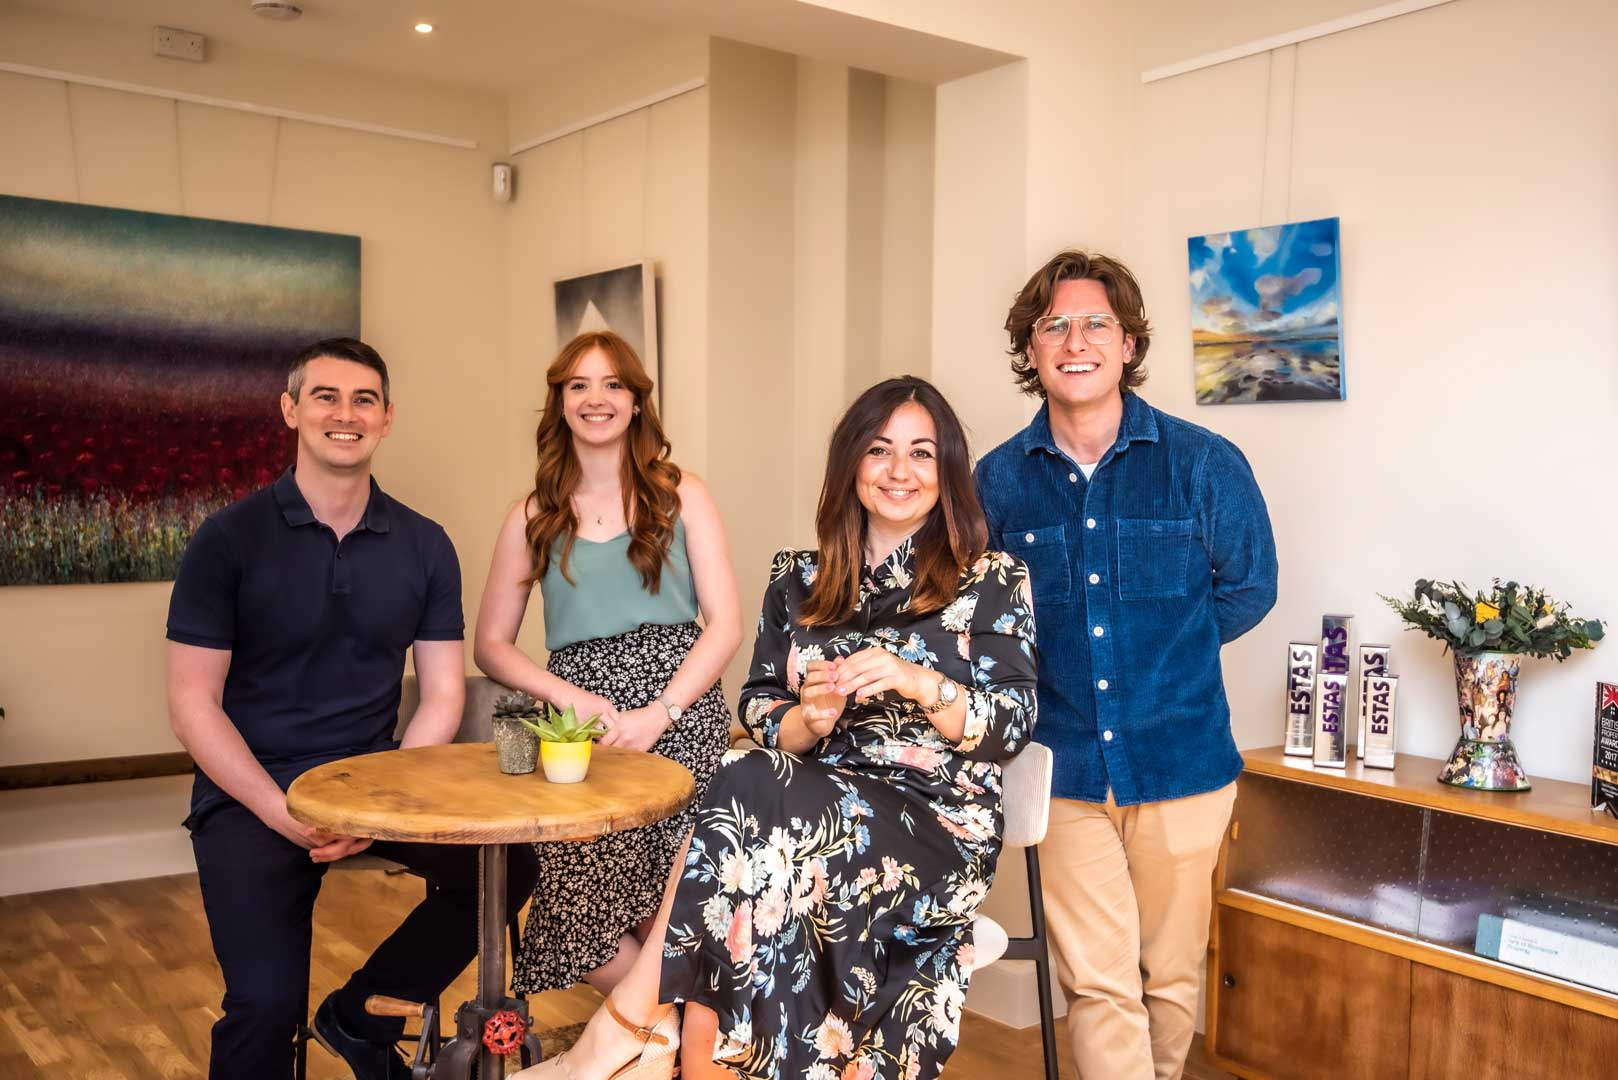 Chiswick Property: Horton and Garton – Moving On Up